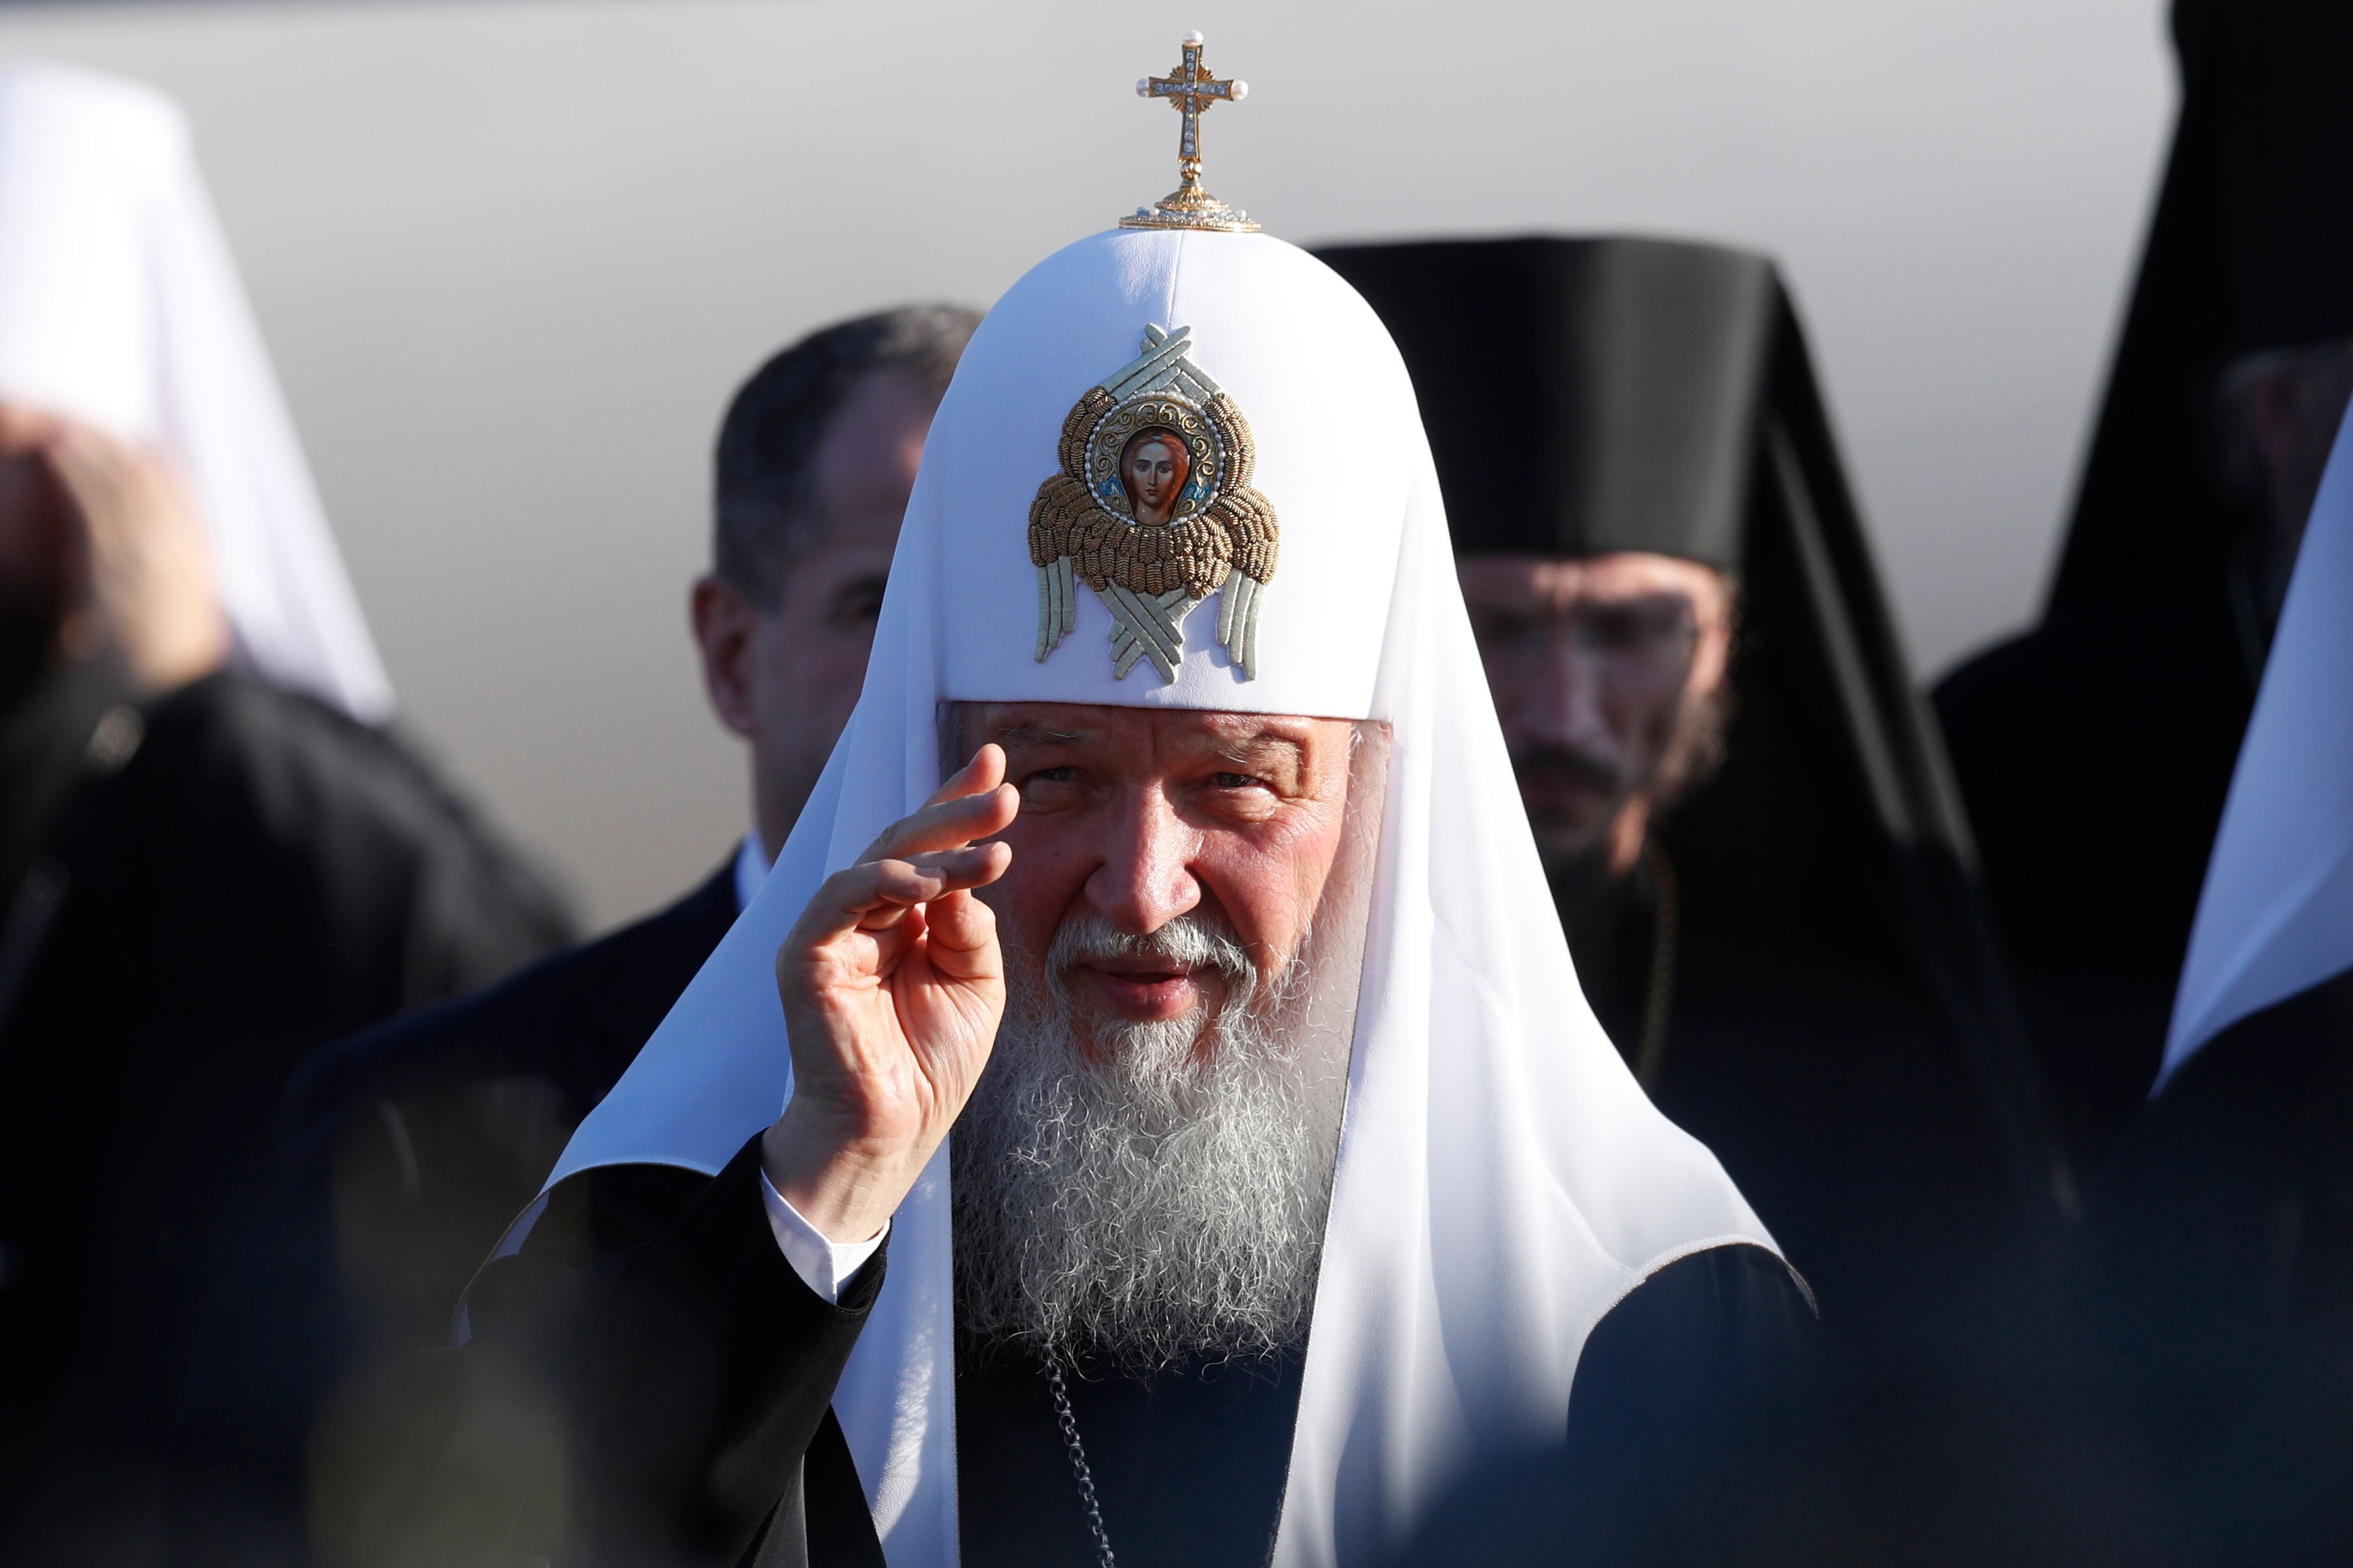 Patriarch Kirill is the leader of the Russian Orthodox Church.